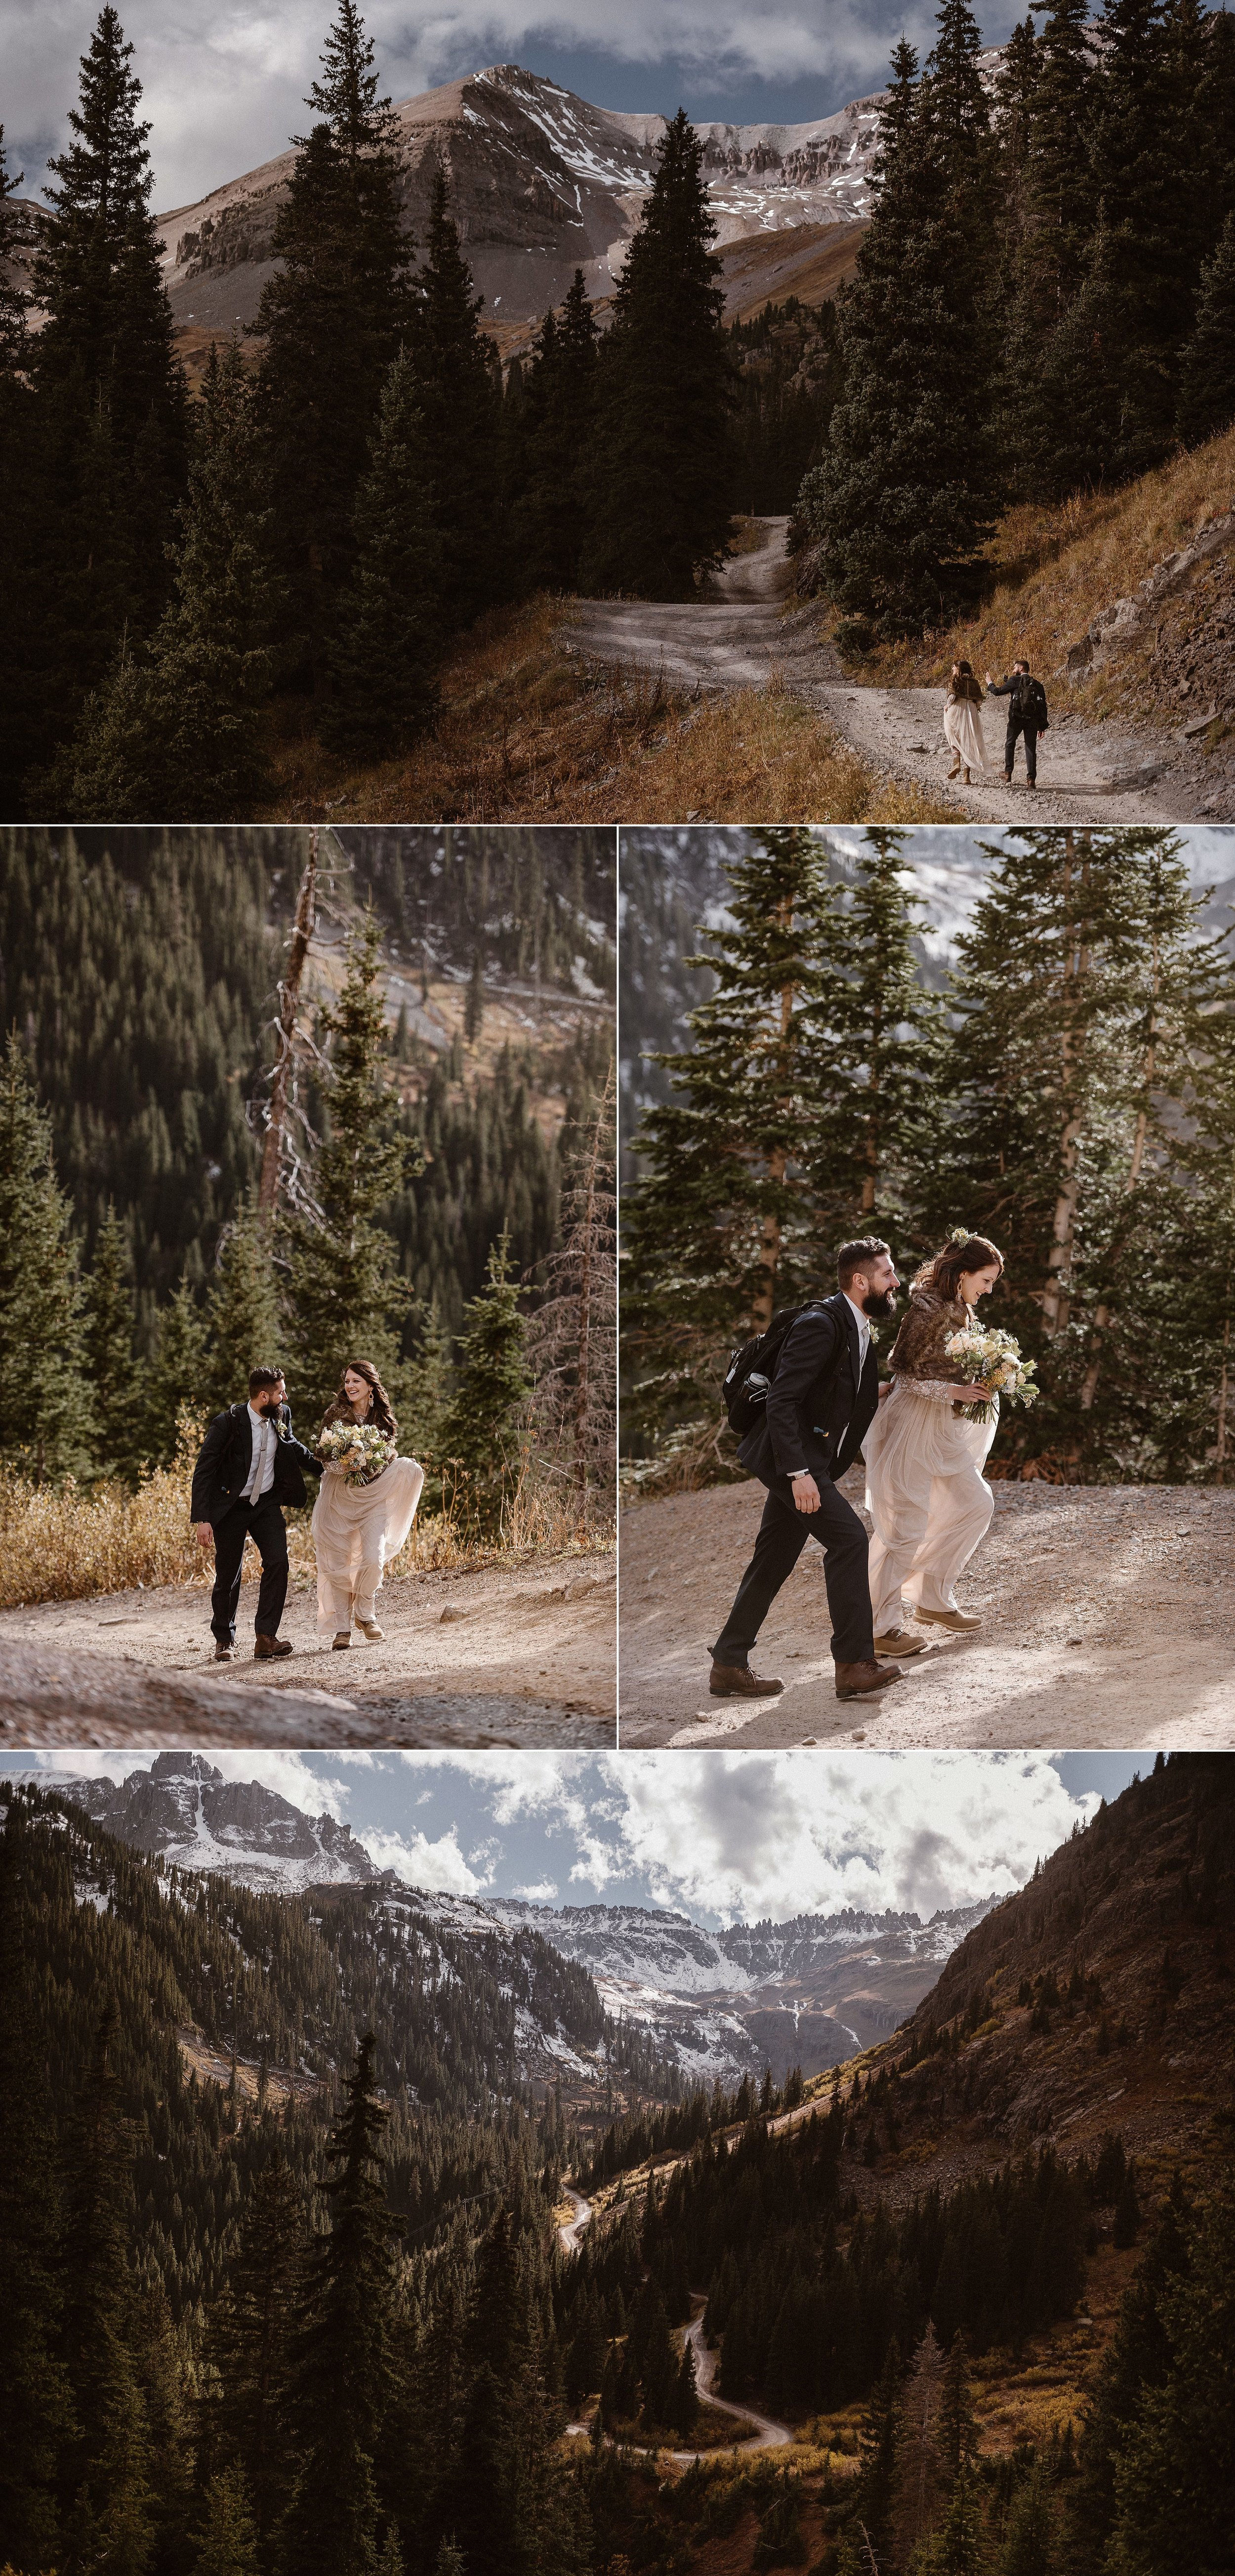 Tossing on a backpack of essentials, Dan and Jen began their hike up Yankee Boy Basin in Ouray Colorado for their epic elopement adventure with their intimate elopement photographer Maddie Mae. They chose to celebrate their nuptials non-traditionally with a private ceremony in the San Juan Mountains surrounded by the colors of autumn.